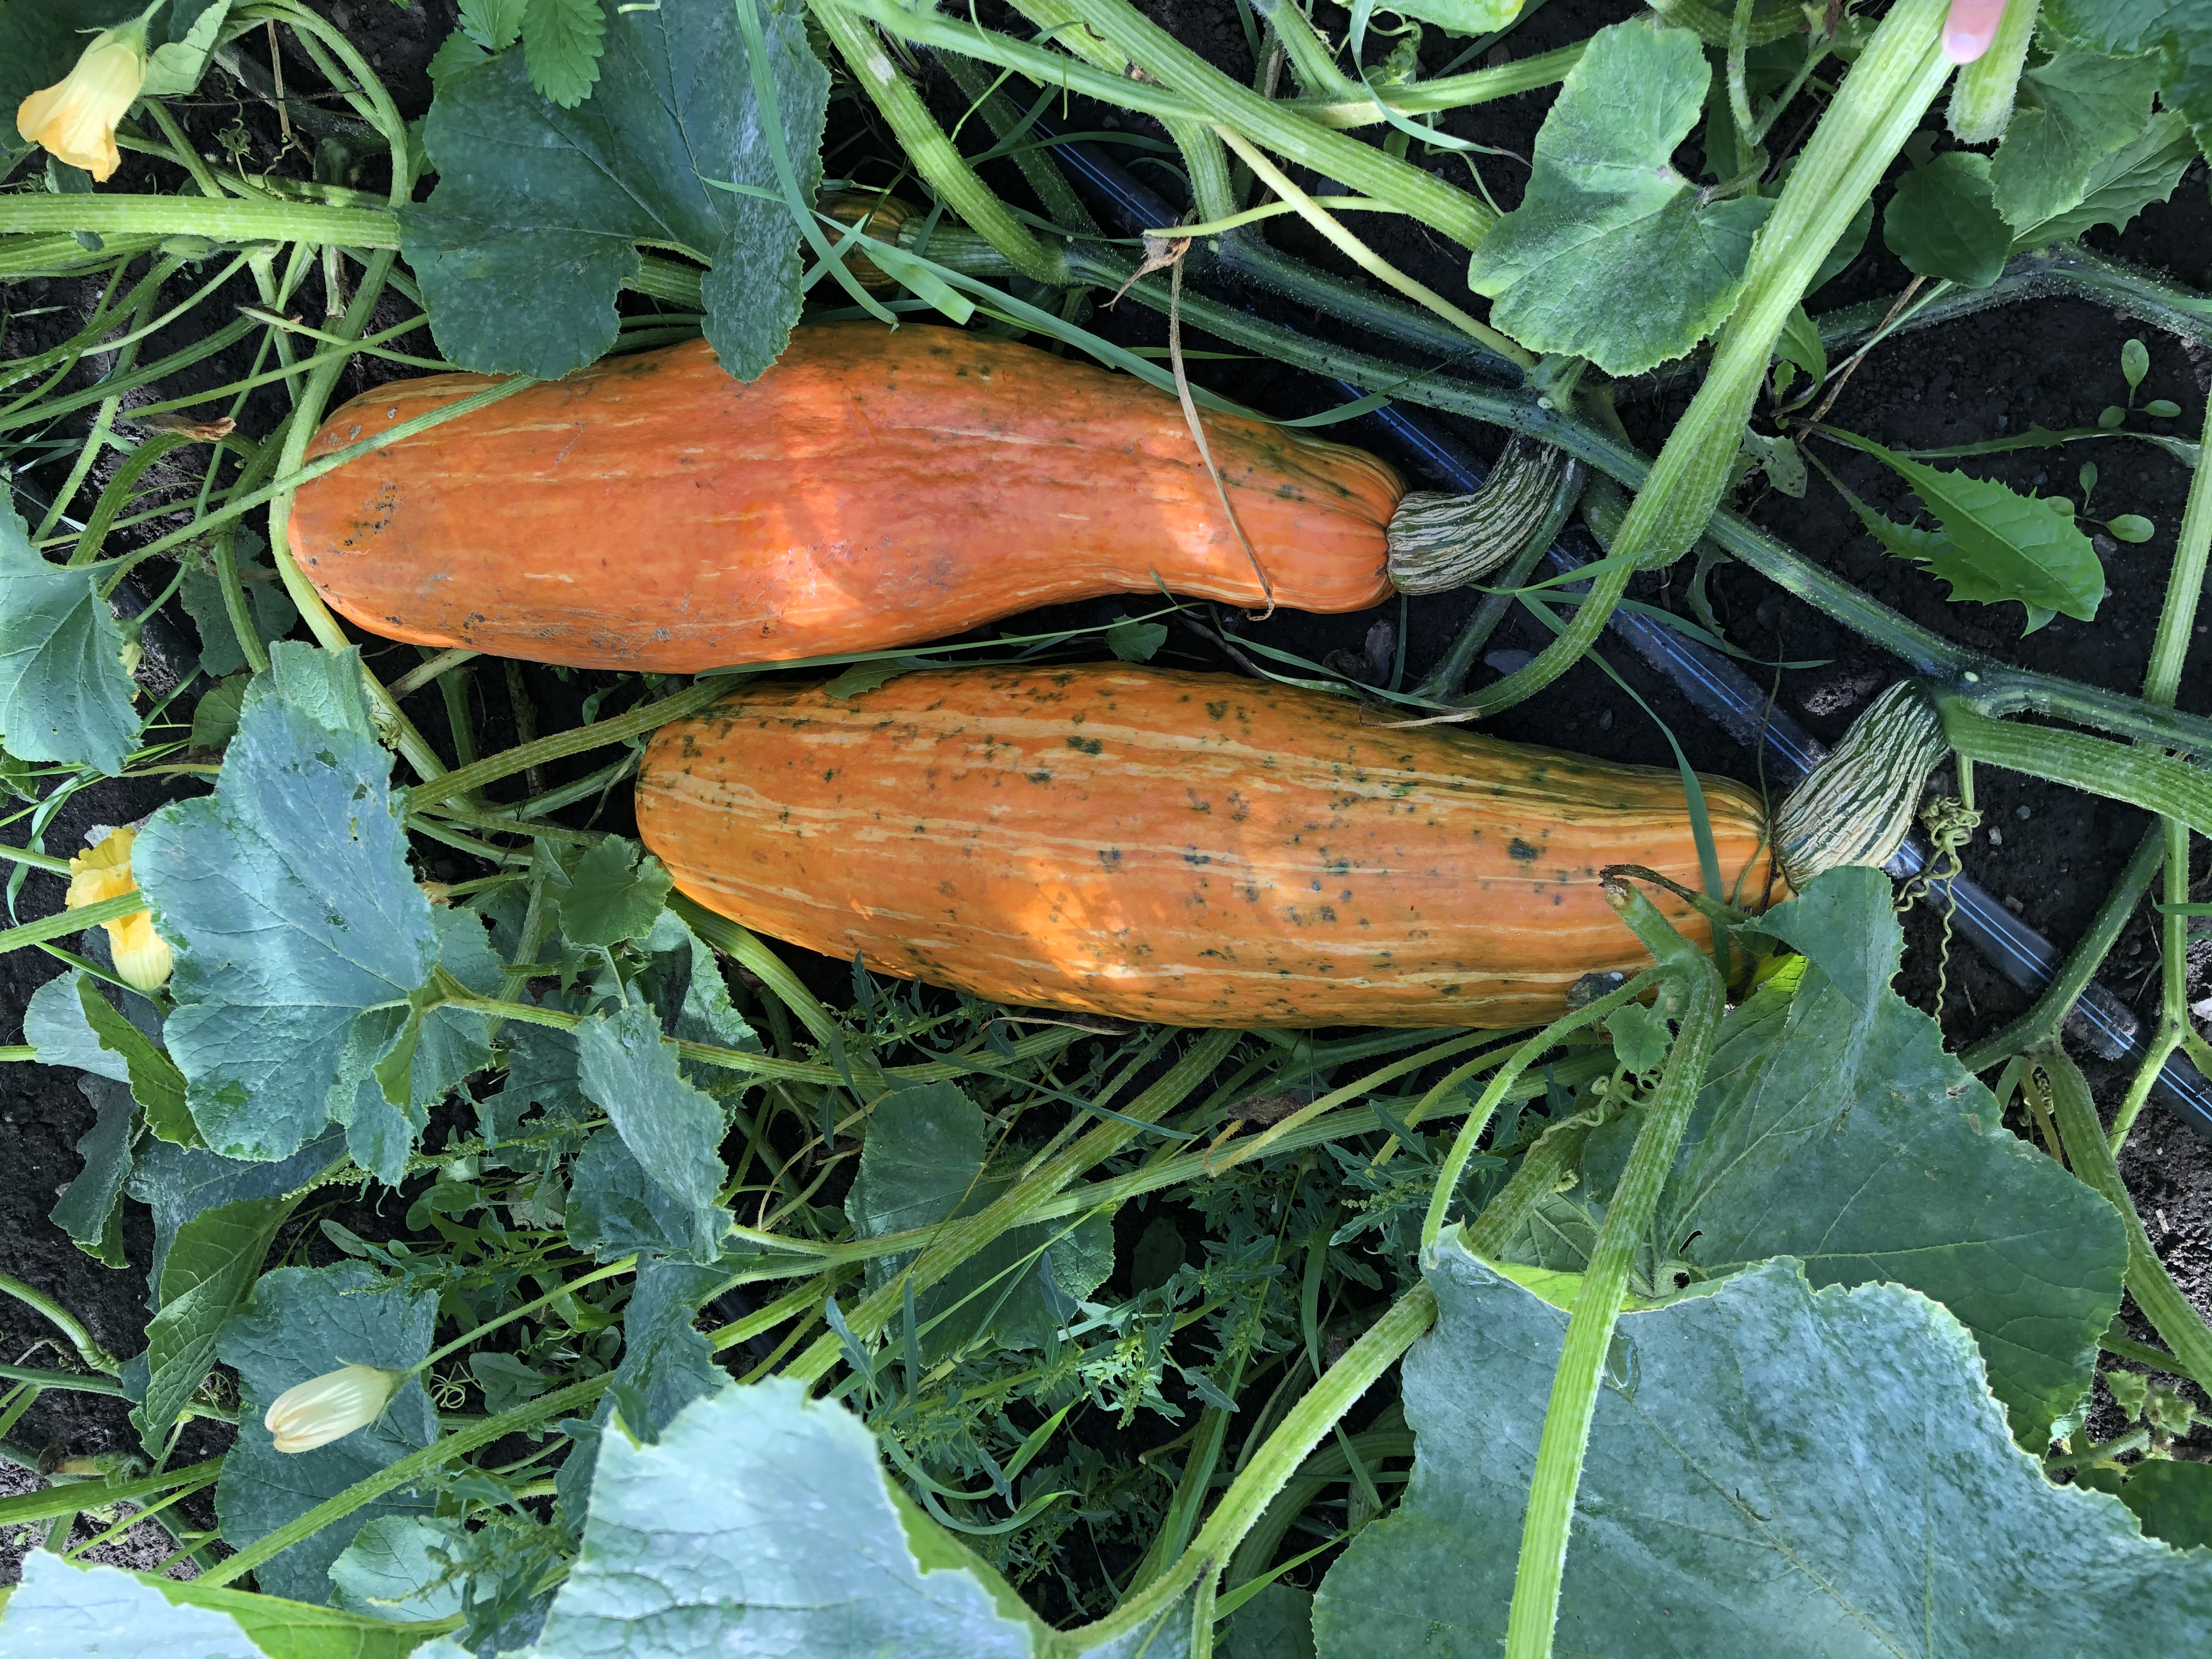 photo of two Gete-Okosomin squash growing in greenery